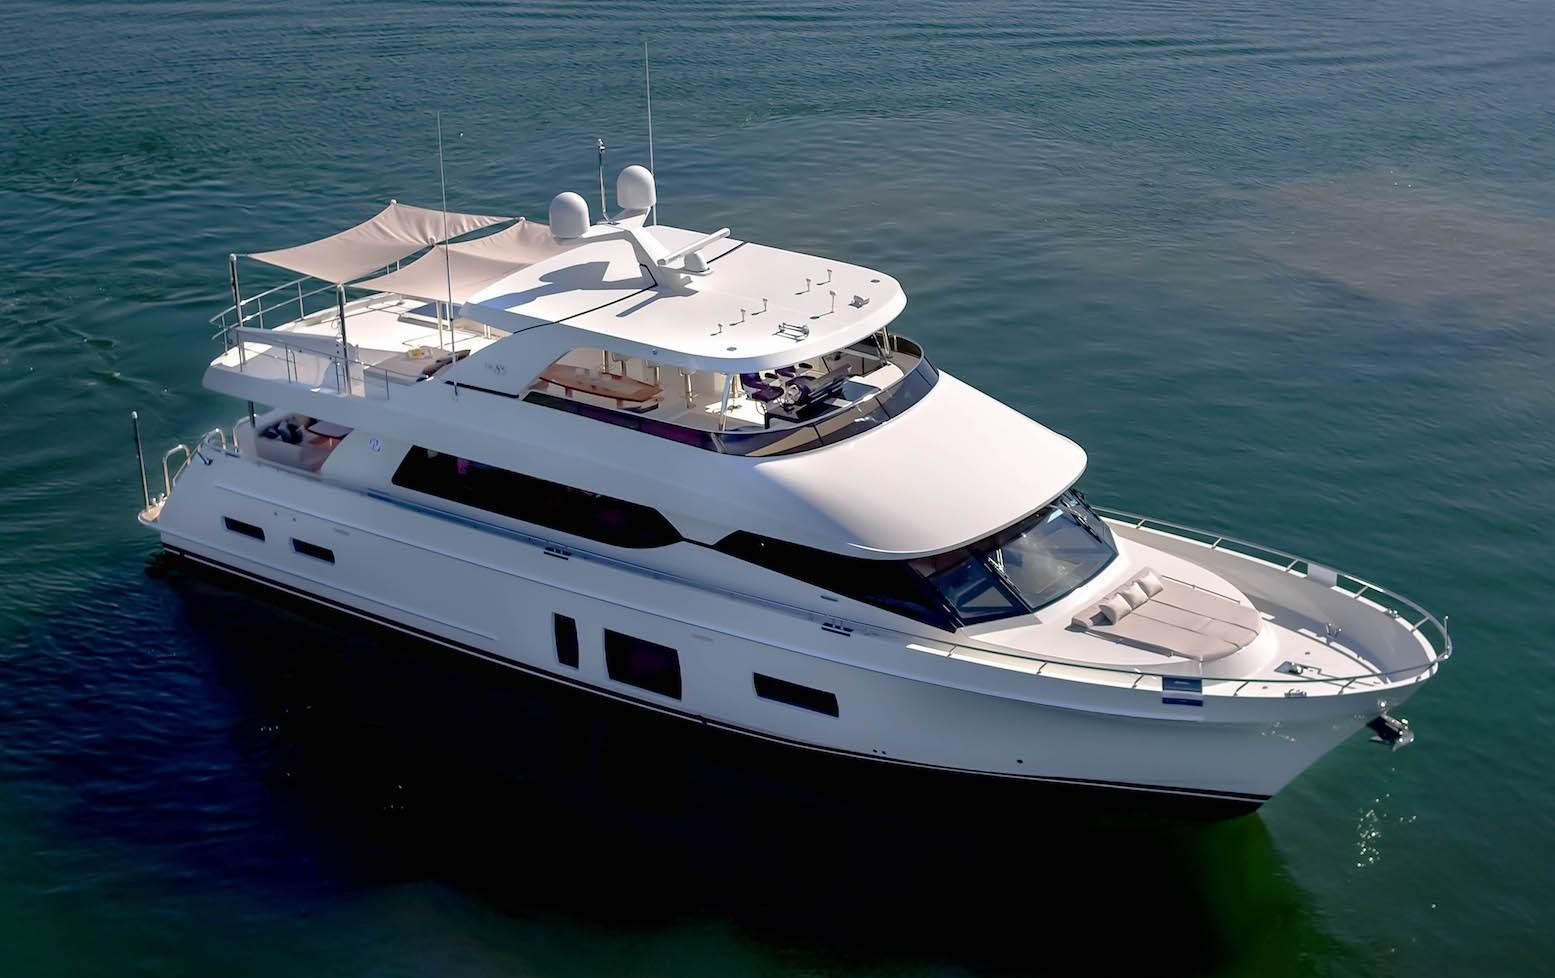 2018 Ocean Alexander Motor Yacht Power Boat For Sale Www Low Cost Burglar Alarm Boats